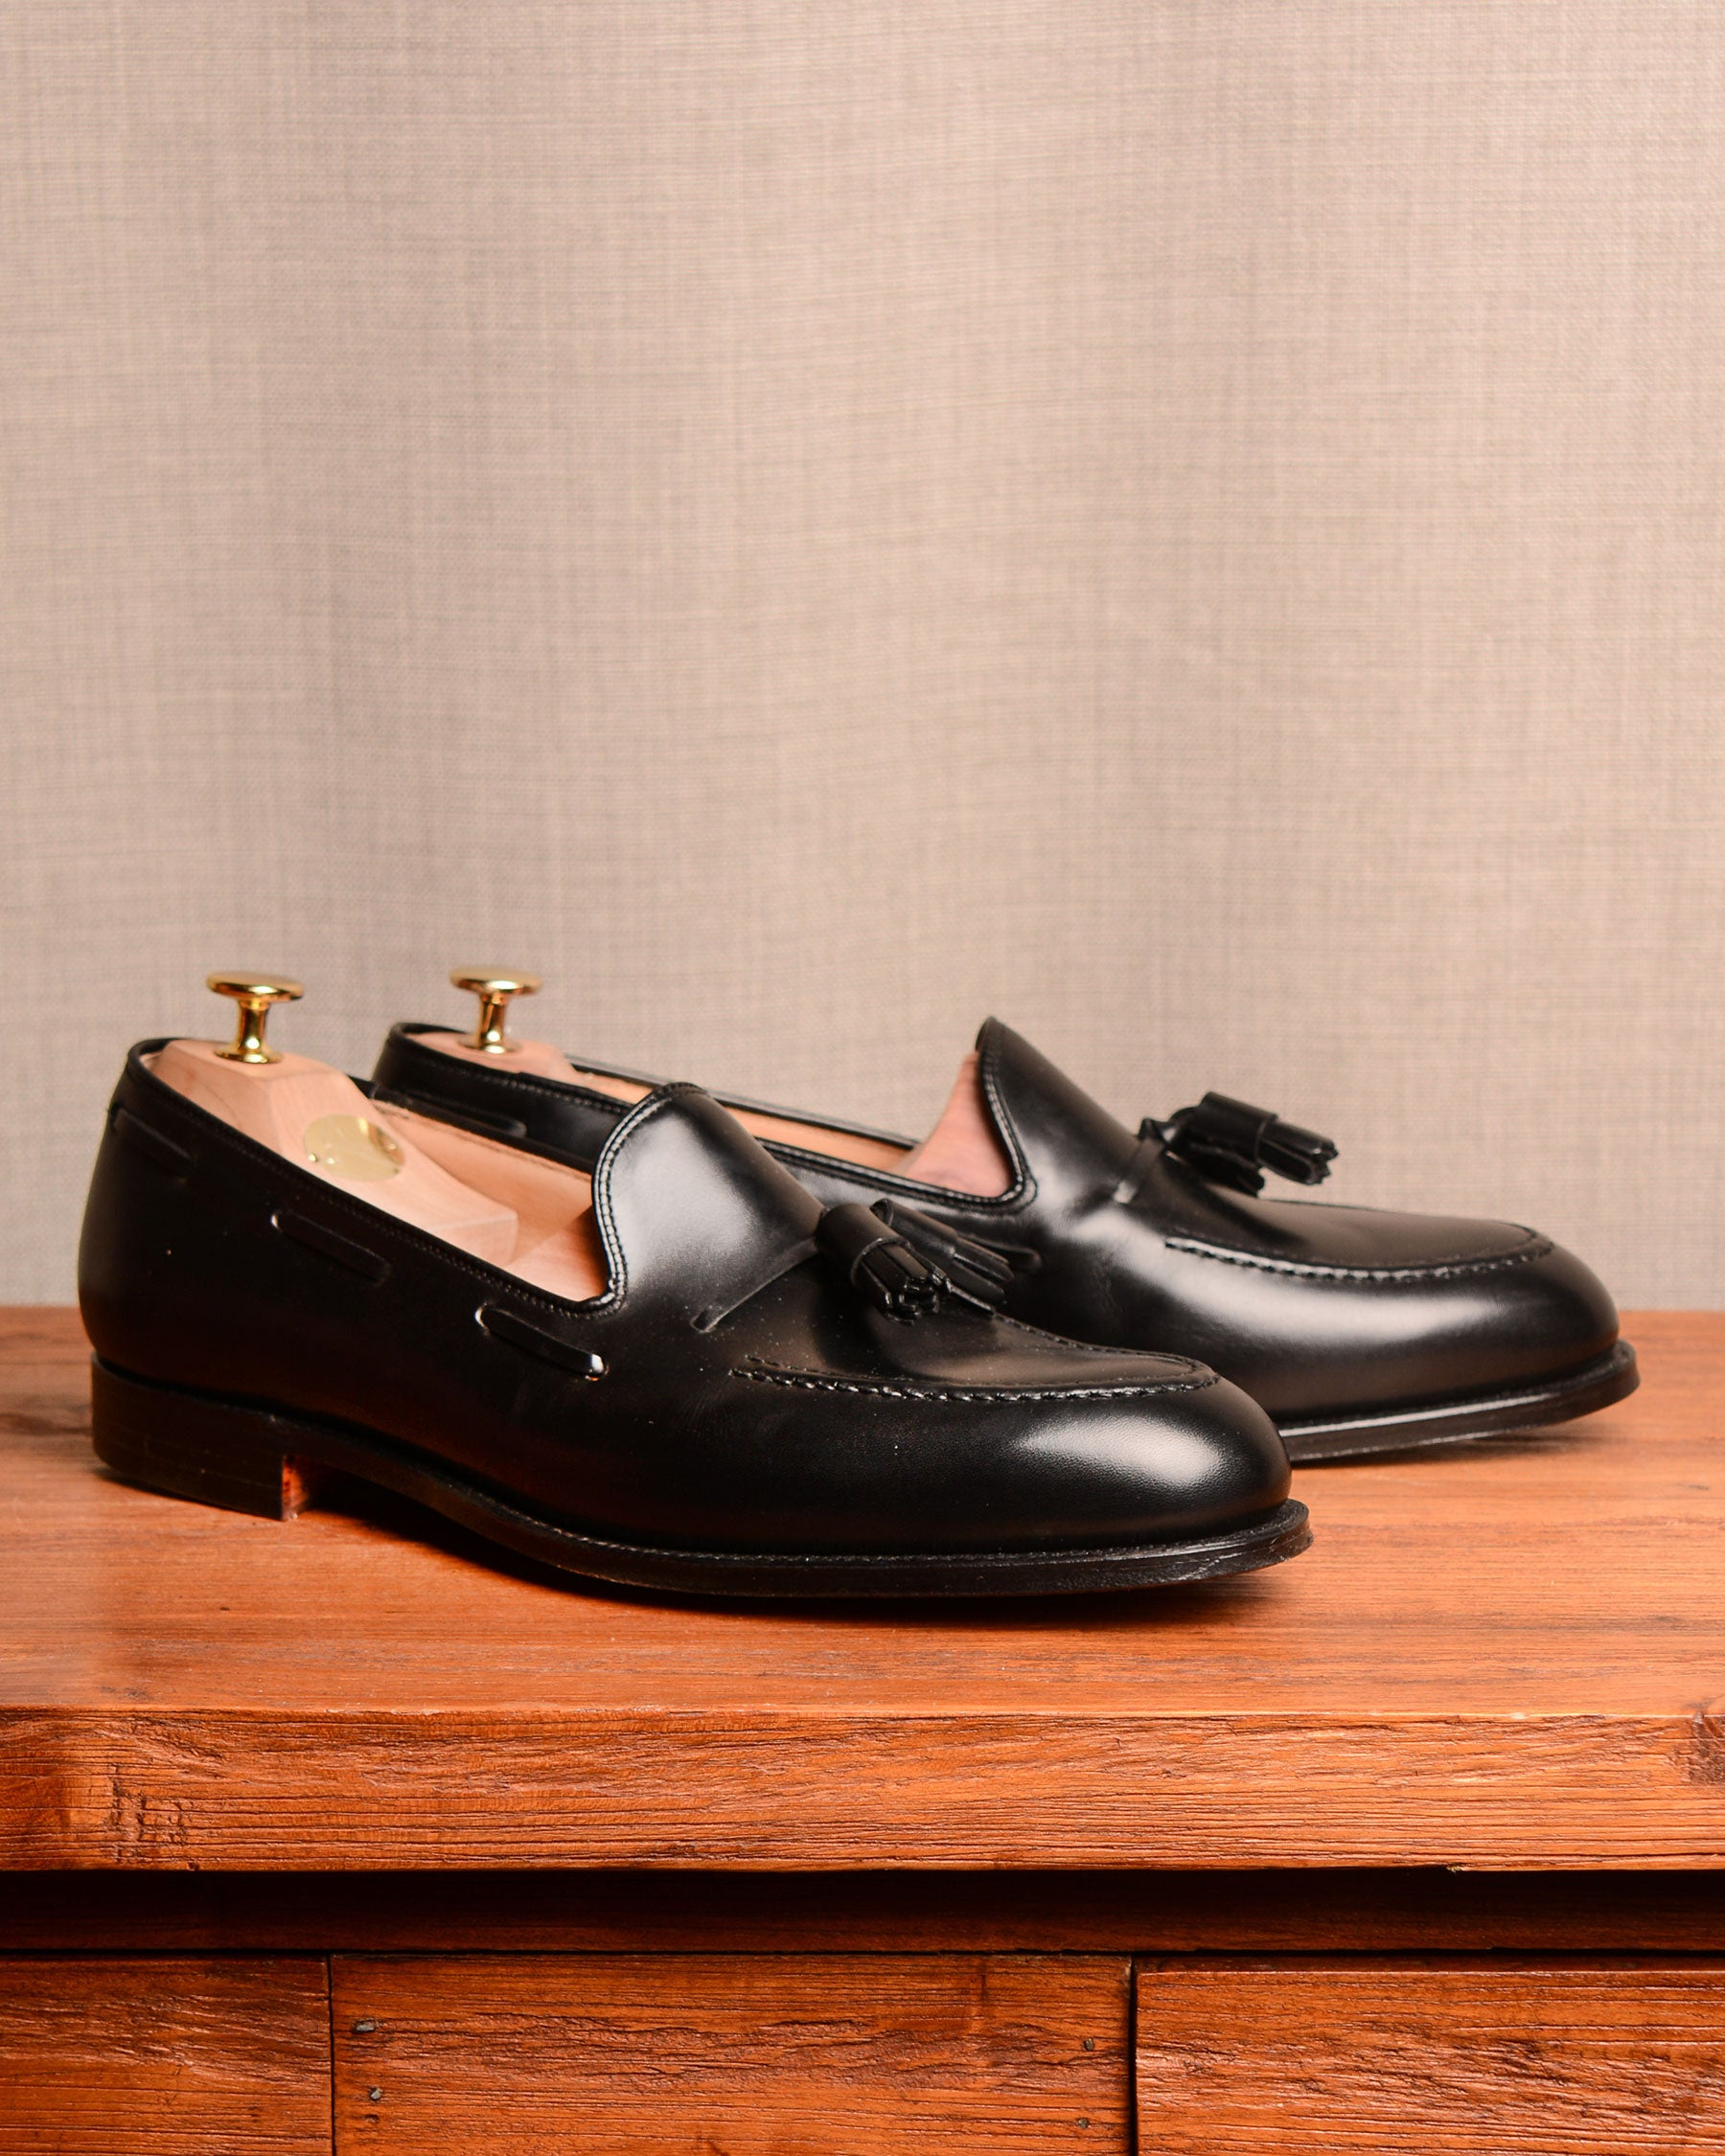 Crockett & Jones Cavendish - Black